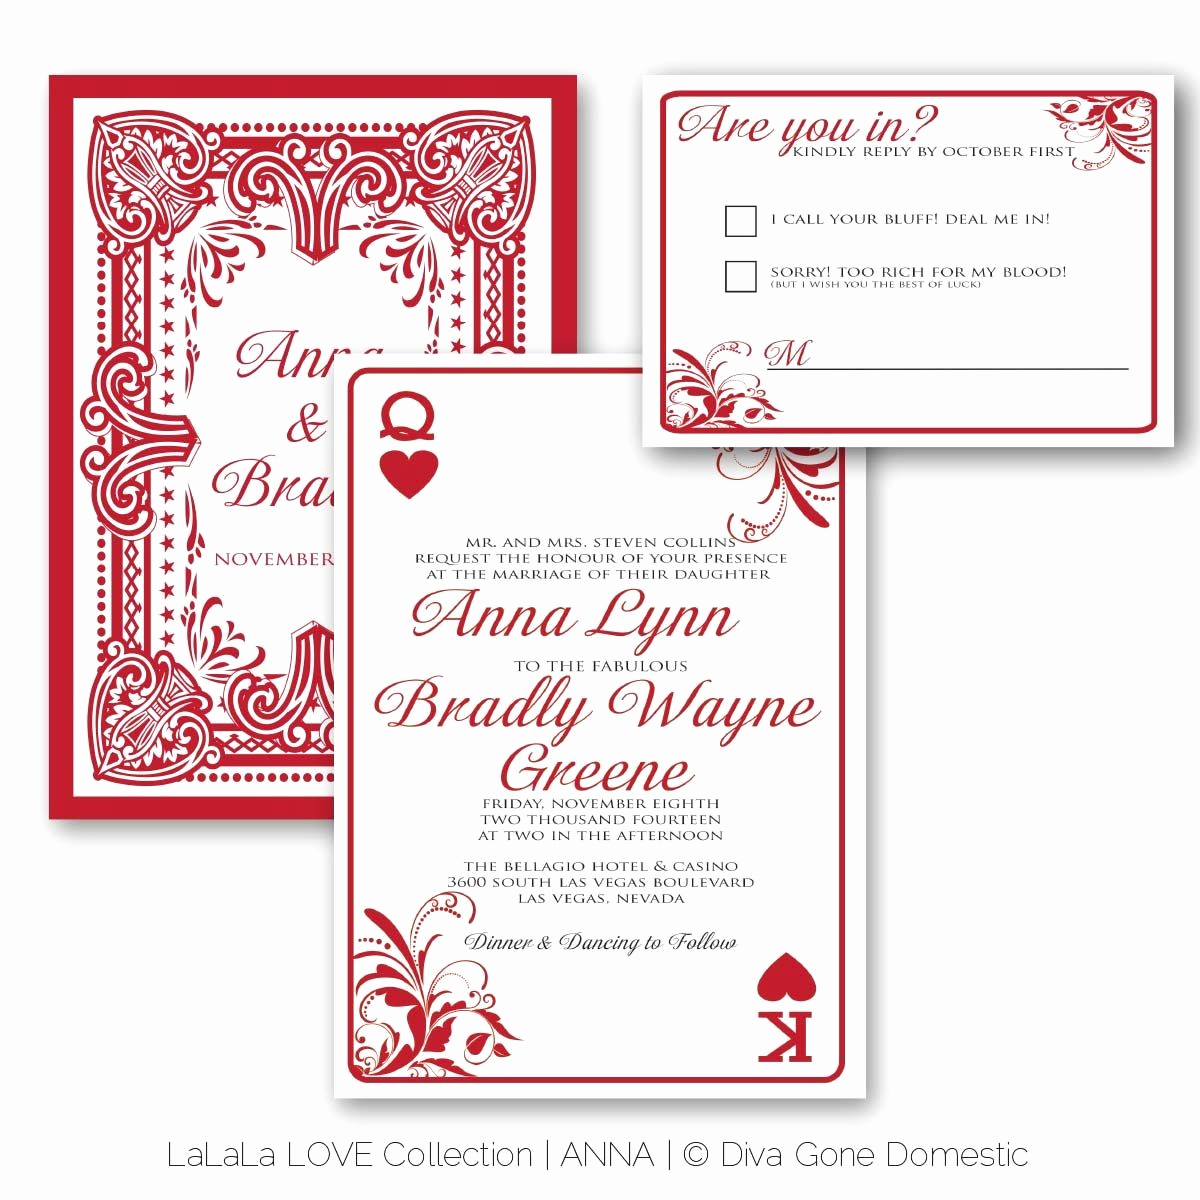 Playing Card Invitation Template Free Fresh Playing Cards Invitations Elegant Card Invitation Template